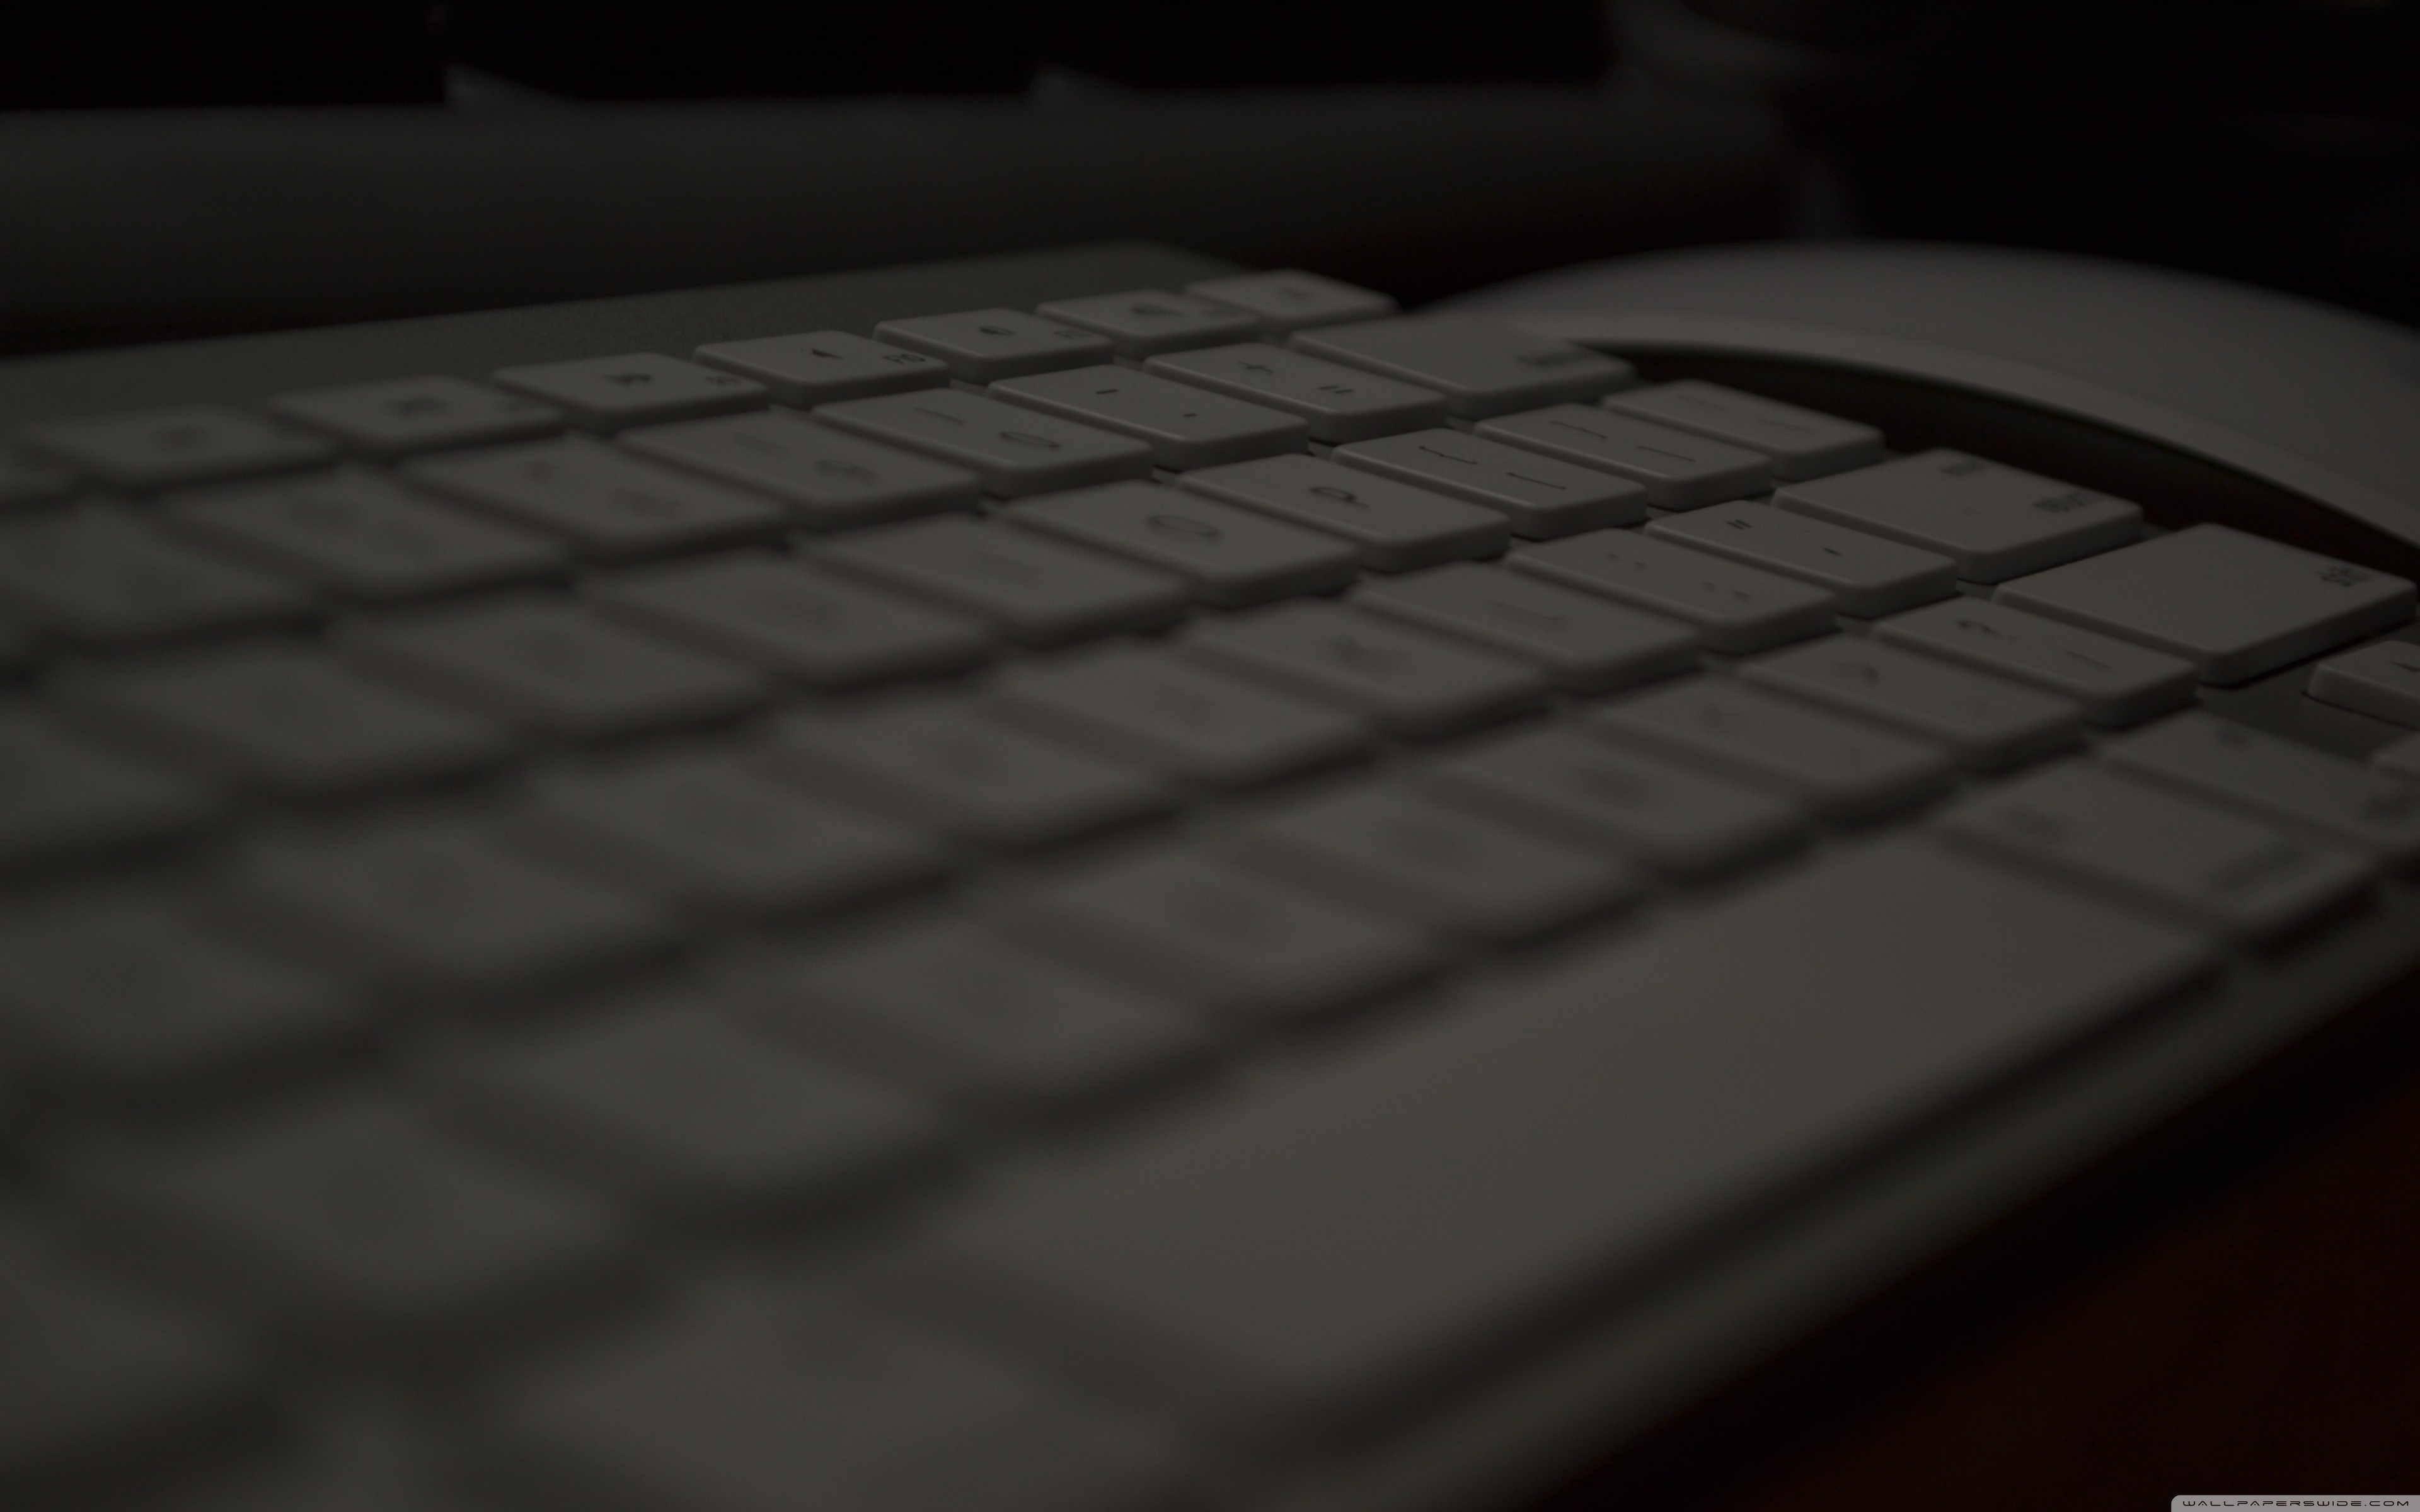 Download Free WallpaperApple Keyboard And Mouse